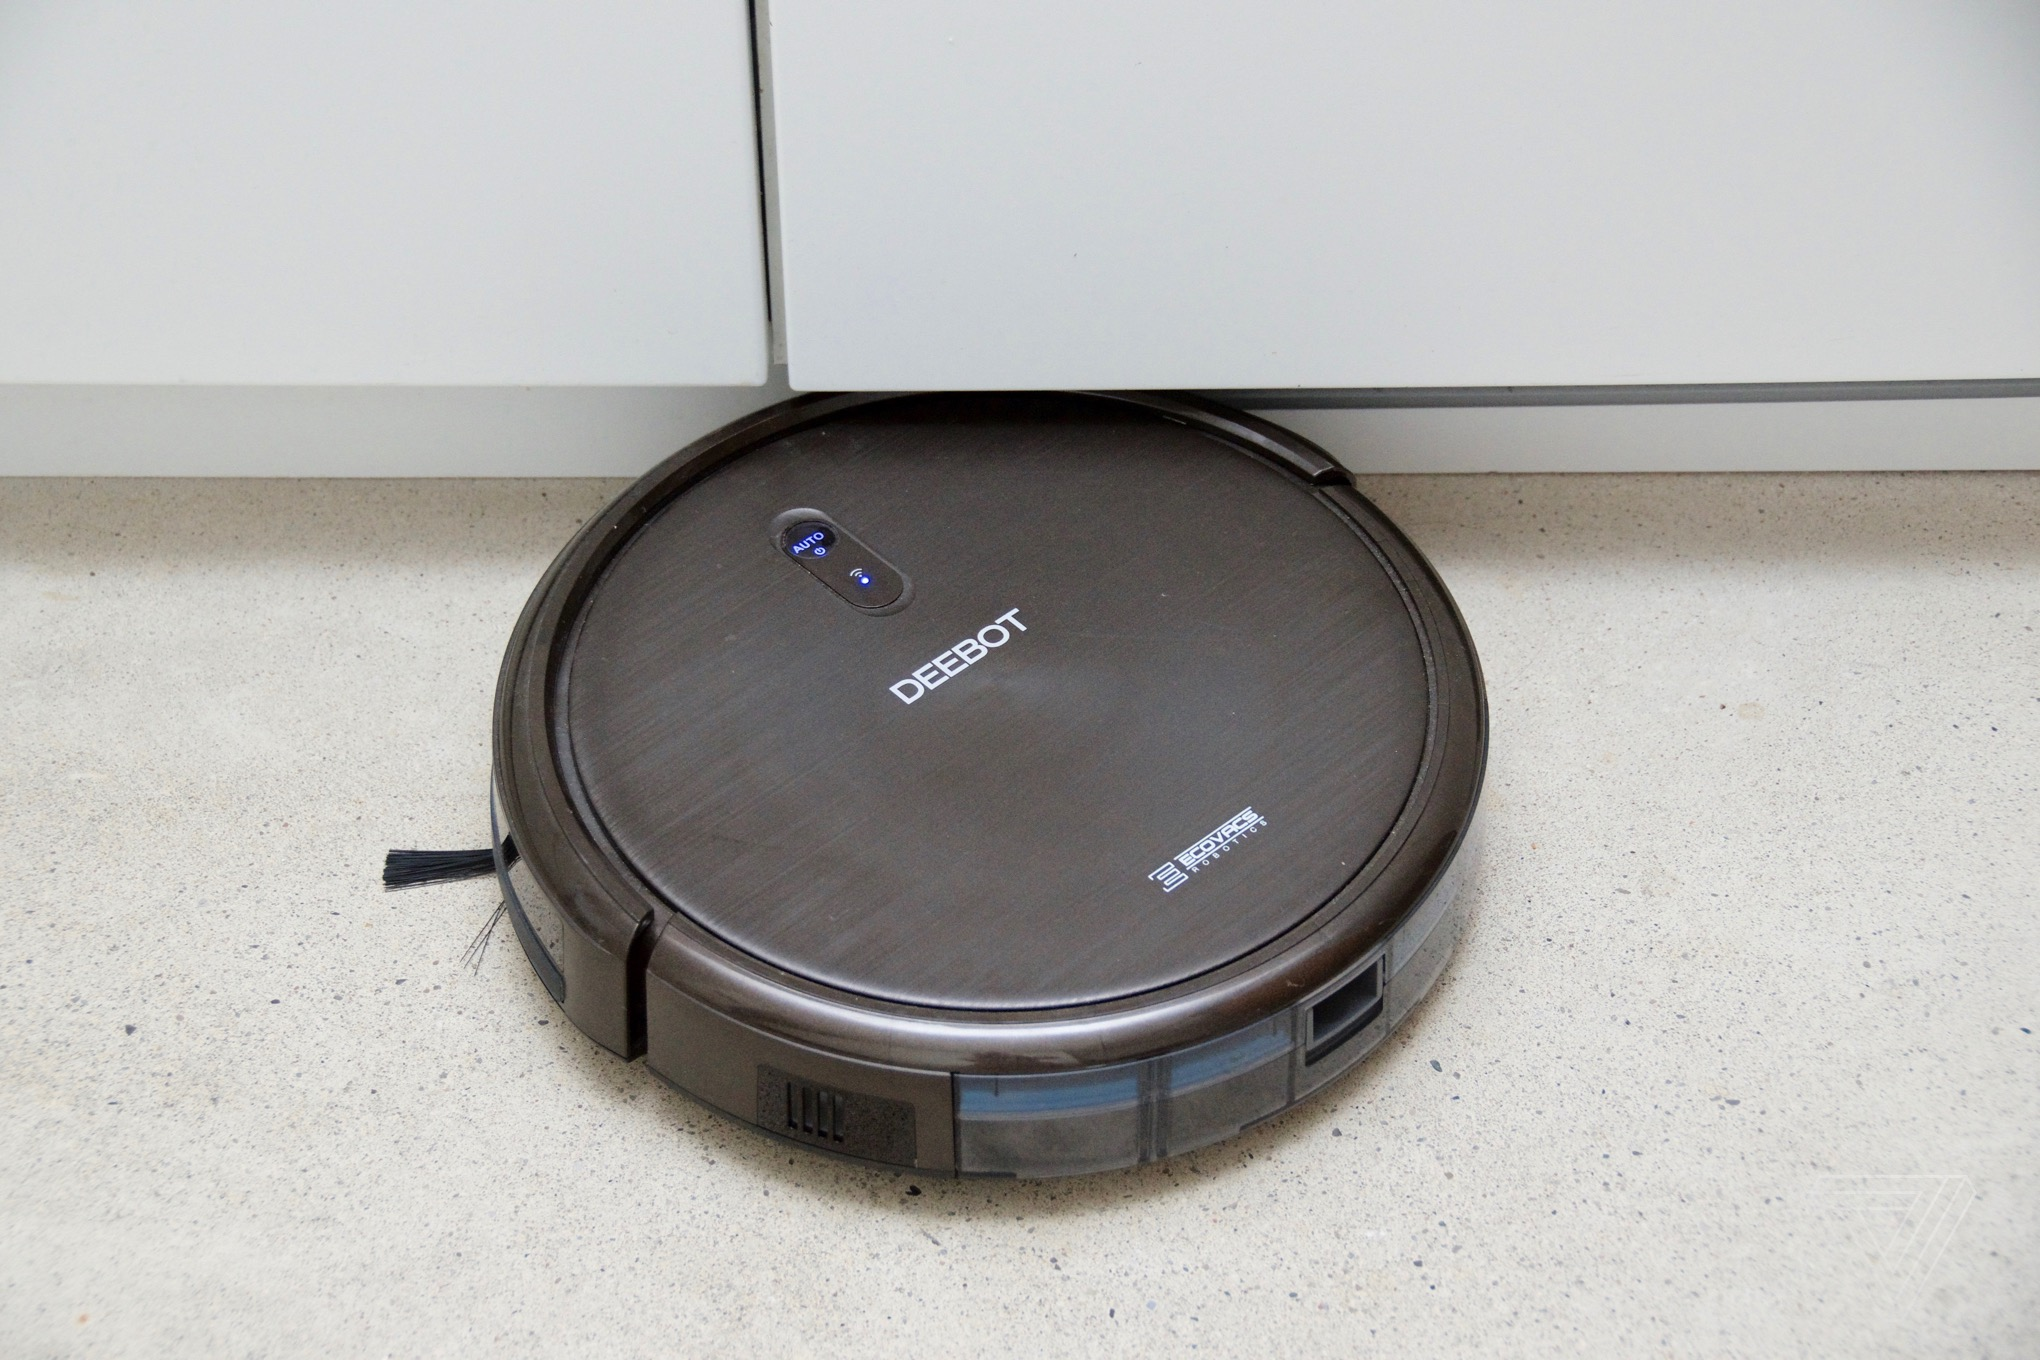 Ecovacs Deebot N79 >> Deebot N79s Robotic Vacuum Review Why Pay More The Verge